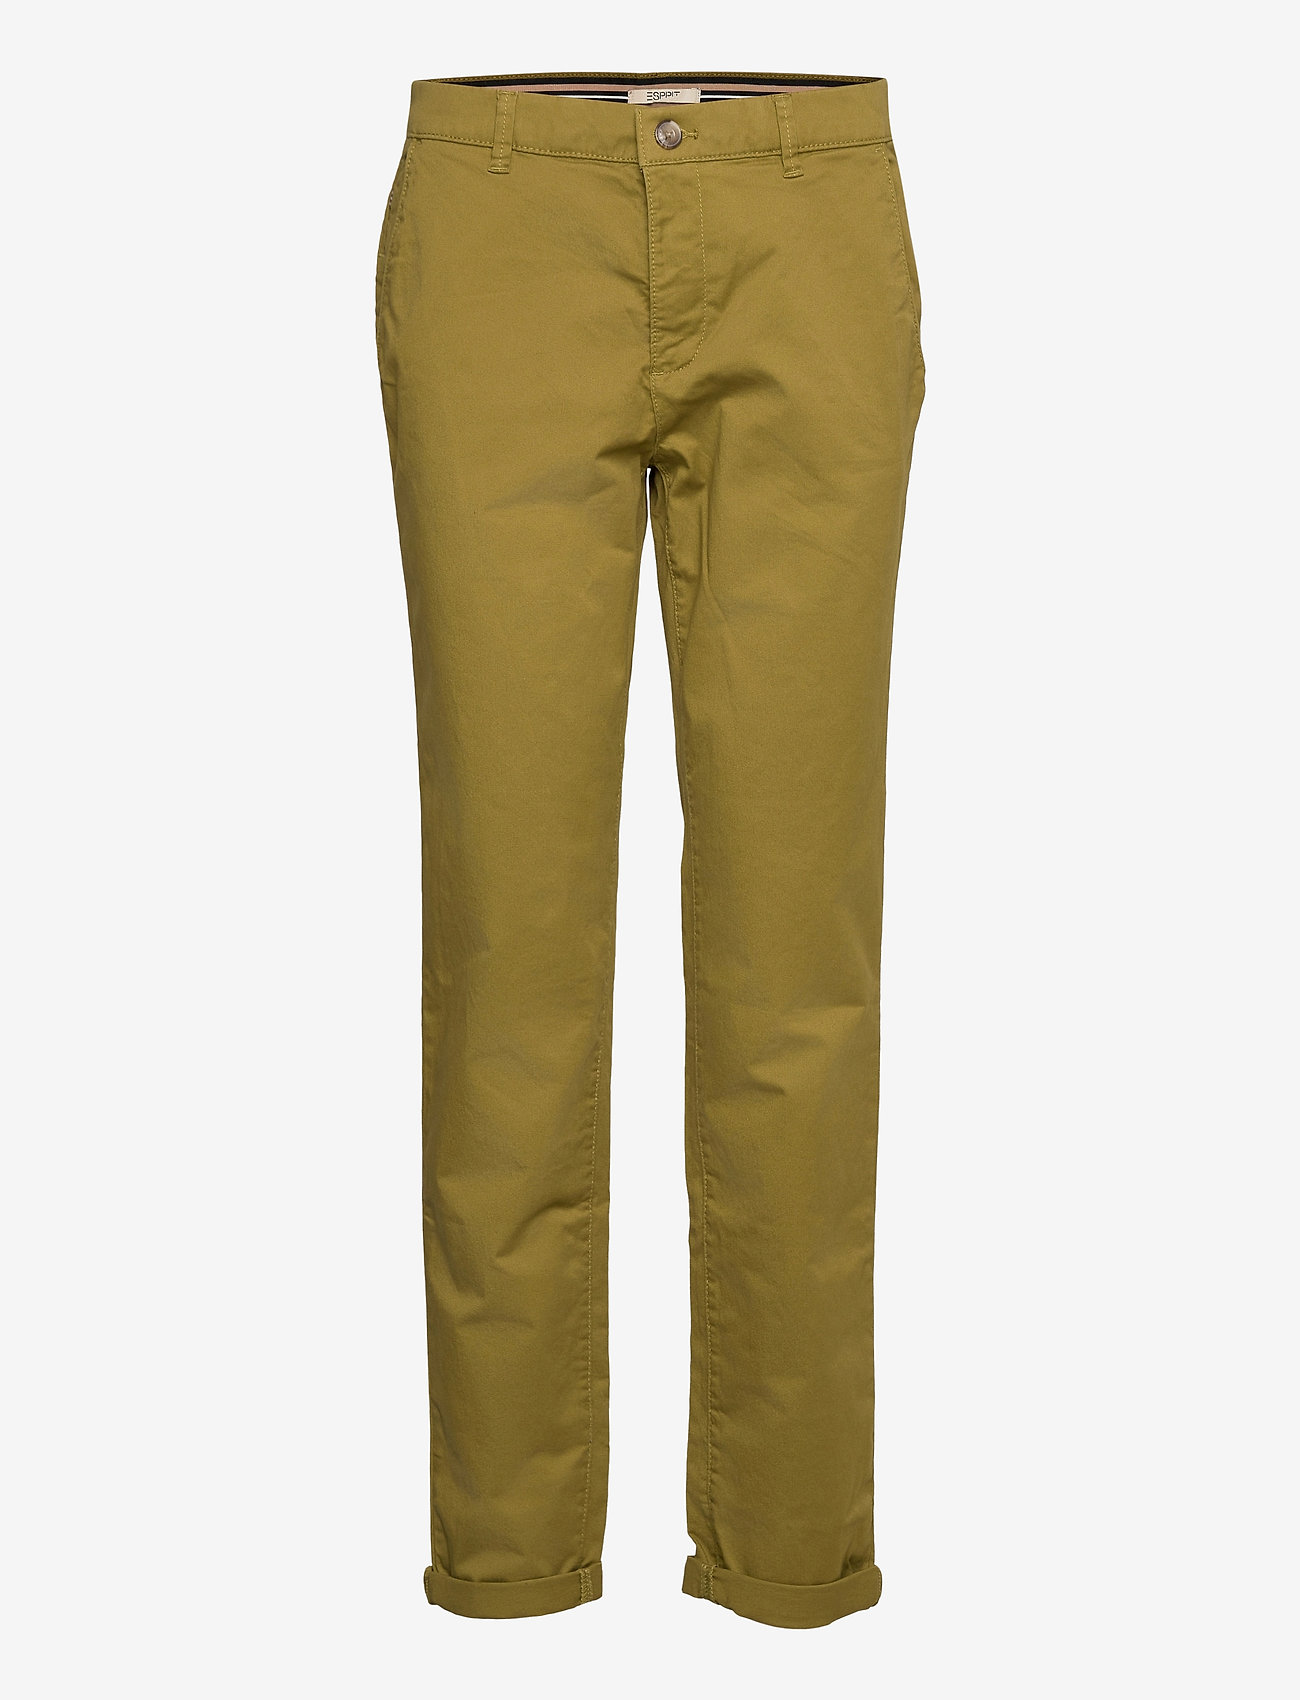 Esprit Casual - Pants woven - chinos - olive - 0